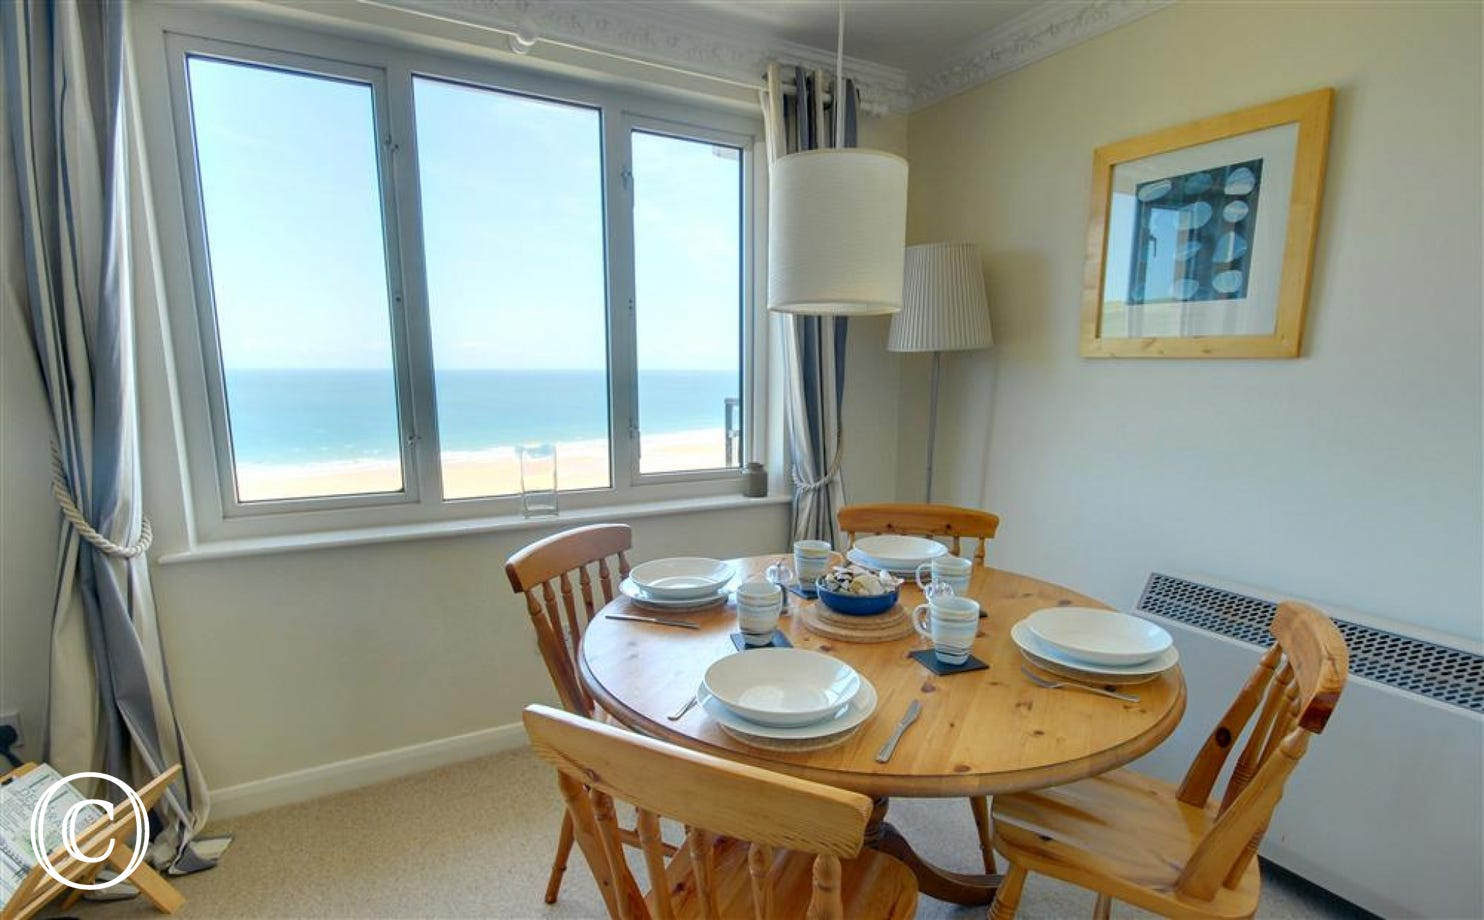 The dining table has been strategically positioned so you can enjoy the views whilst having a meal!